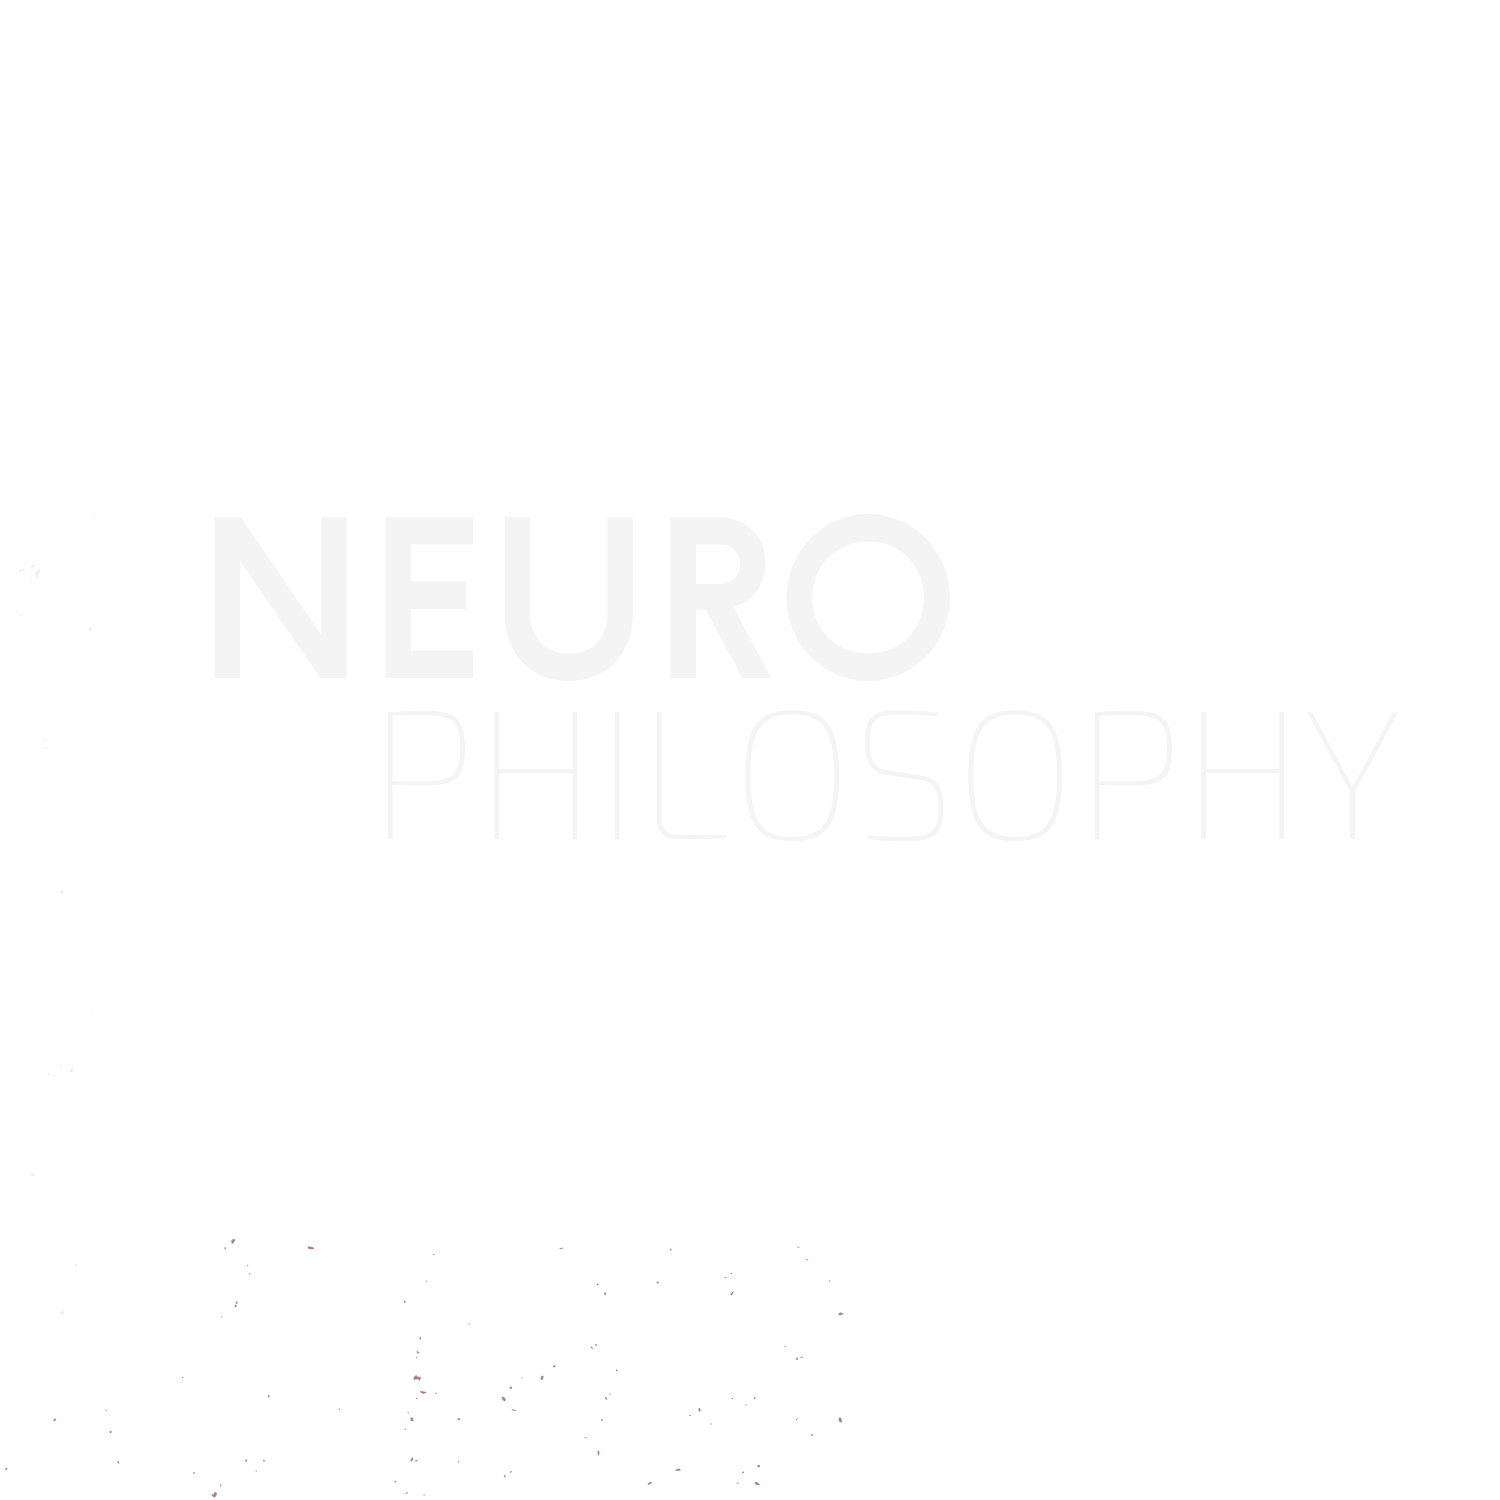 NEUROPHILOSOPHY